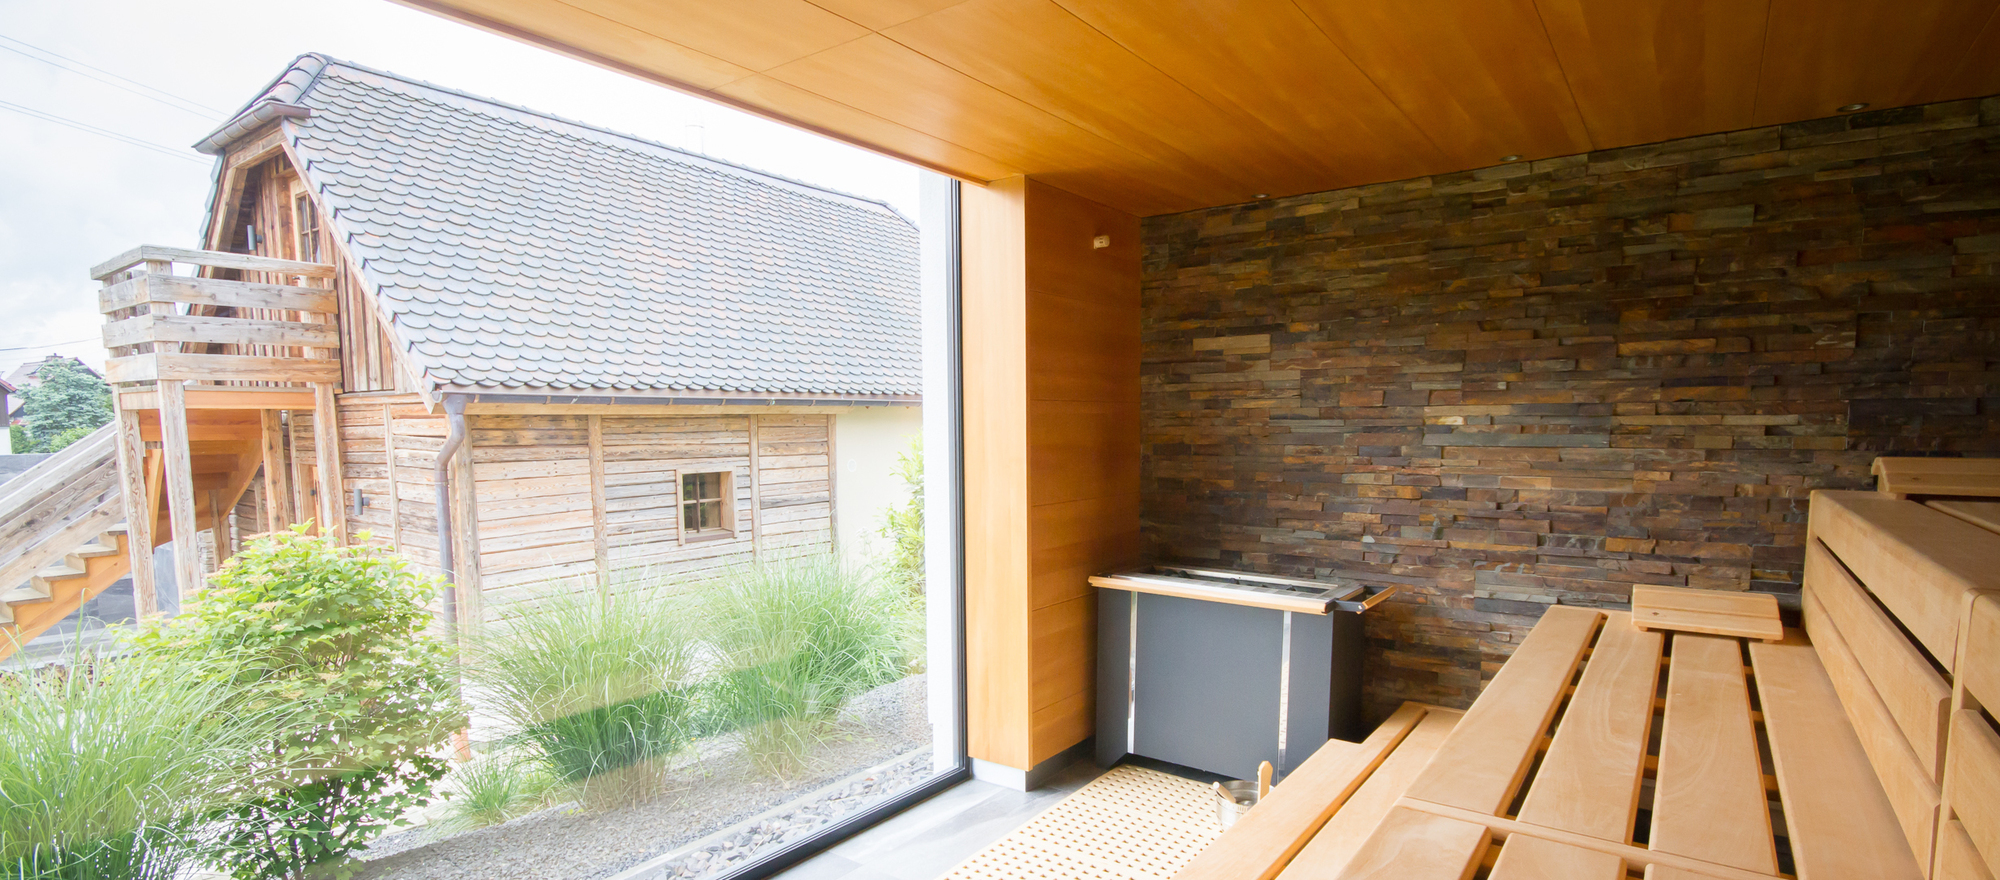 Sauna in the Ringhotel Landhaus Nicolai in Lohmen, hotel in Saxon Switzerland